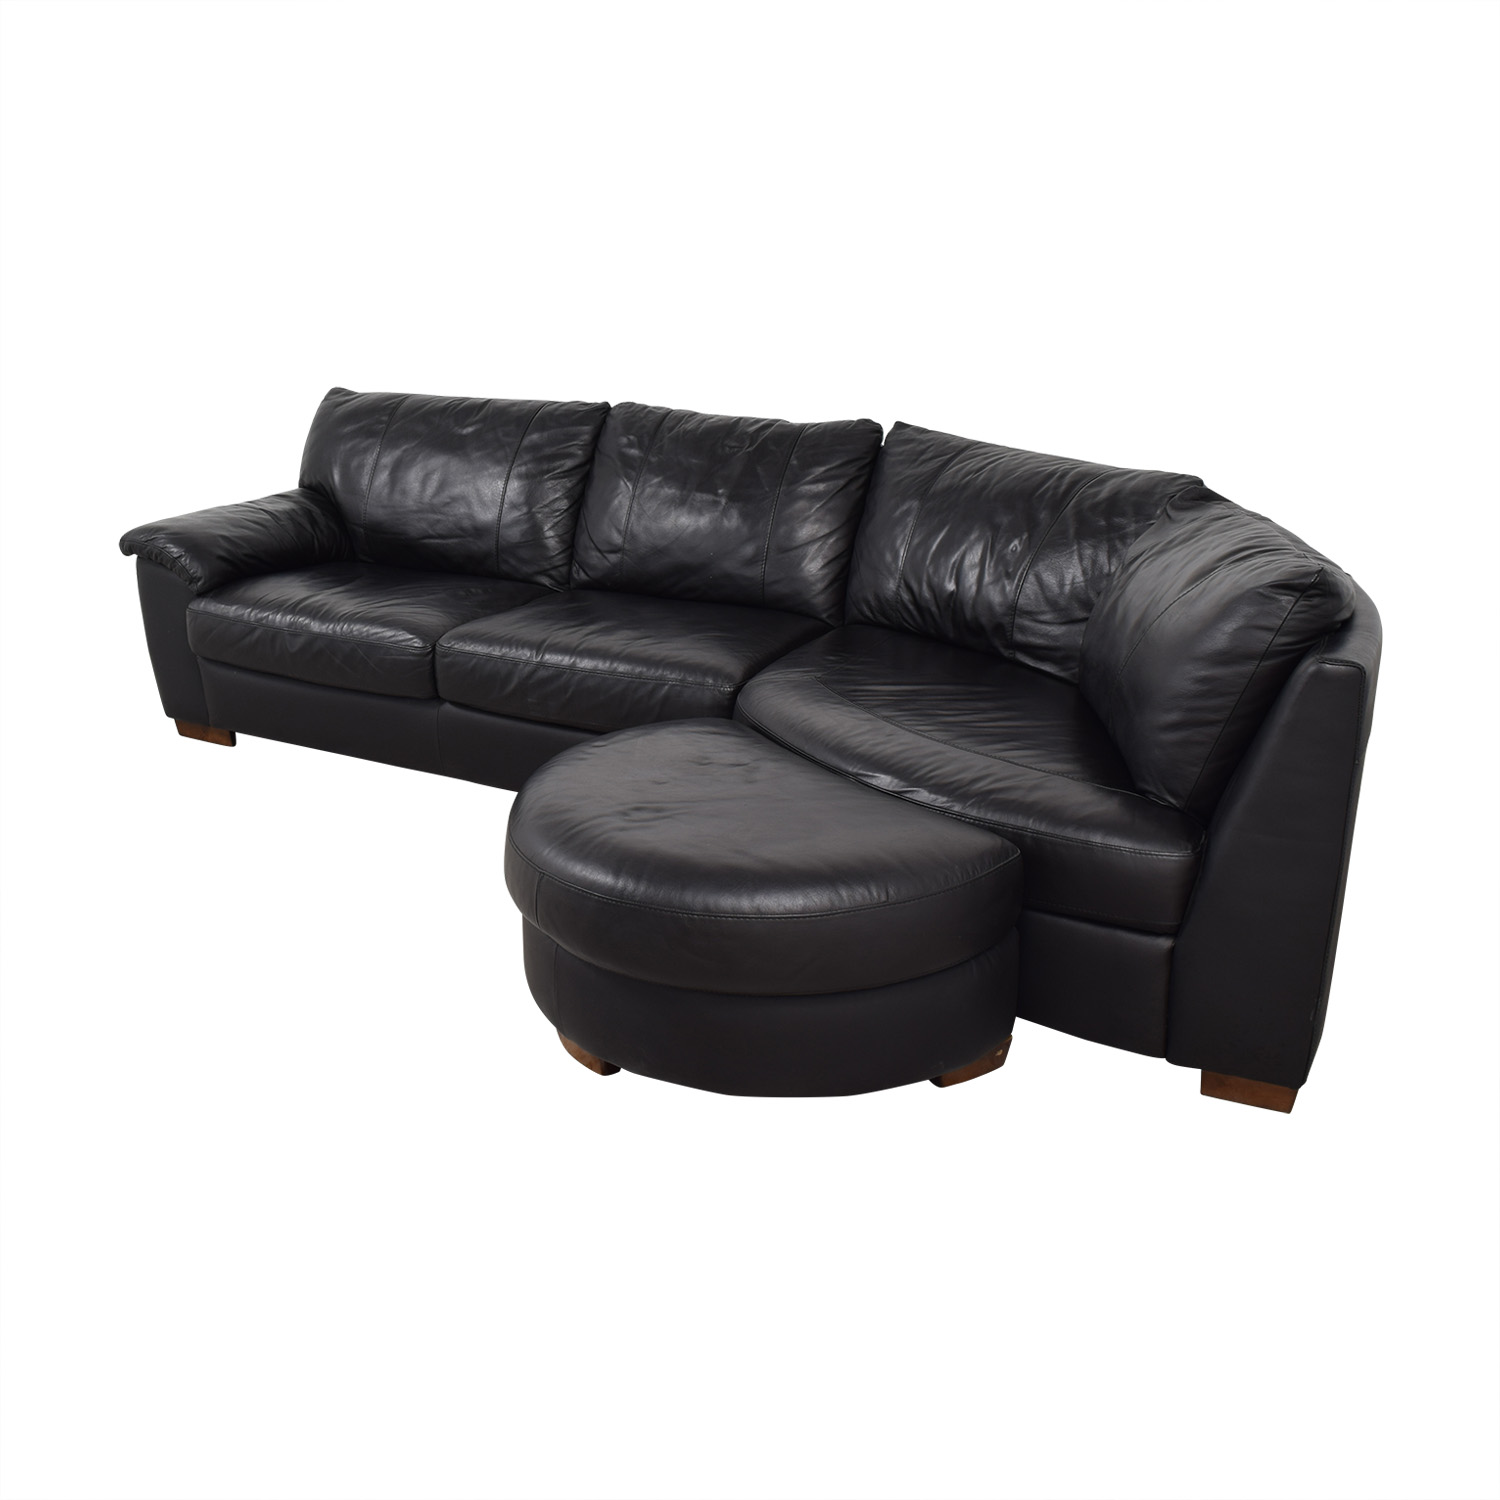 Sensational 78 Off Ikea Ikea Vreta Black Left Arm Corner Sofa With Ottoman Sofas Caraccident5 Cool Chair Designs And Ideas Caraccident5Info